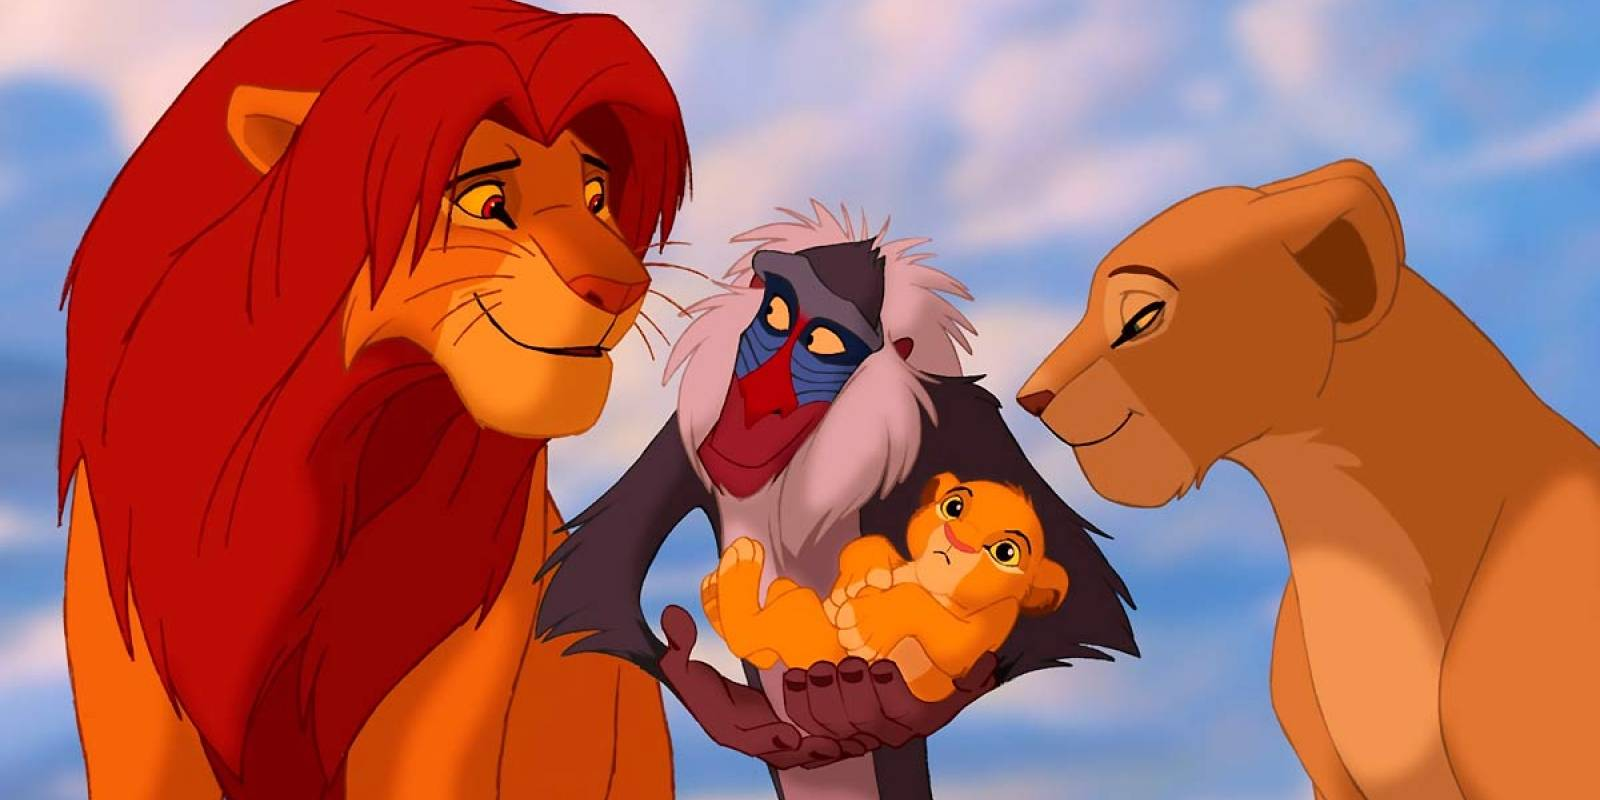 THE LION KING,THE LION KING